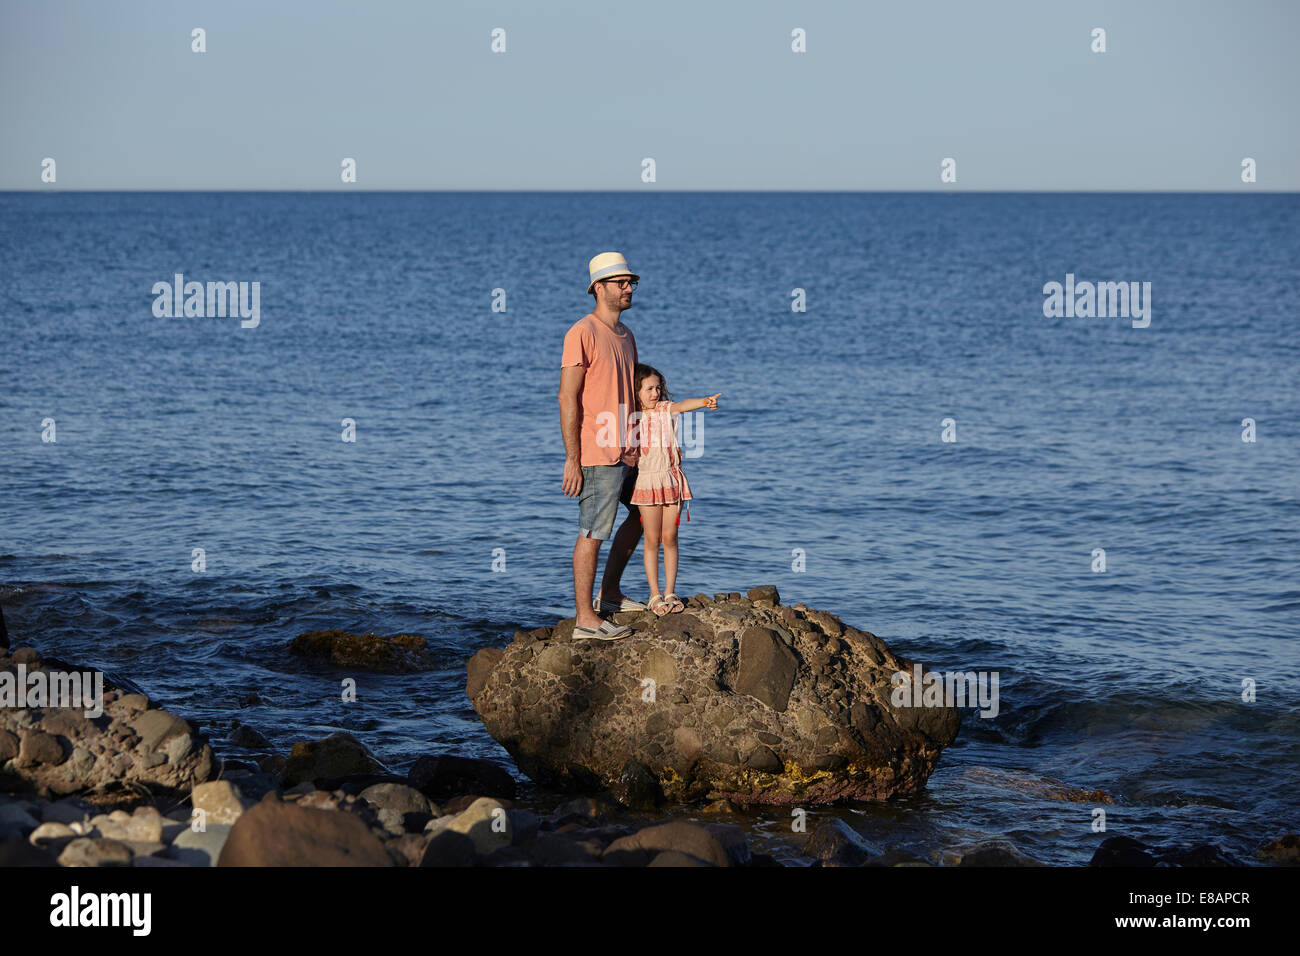 Father and daughter standing on rock in sea, Costa Brava, Catalonia, Spain - Stock Image